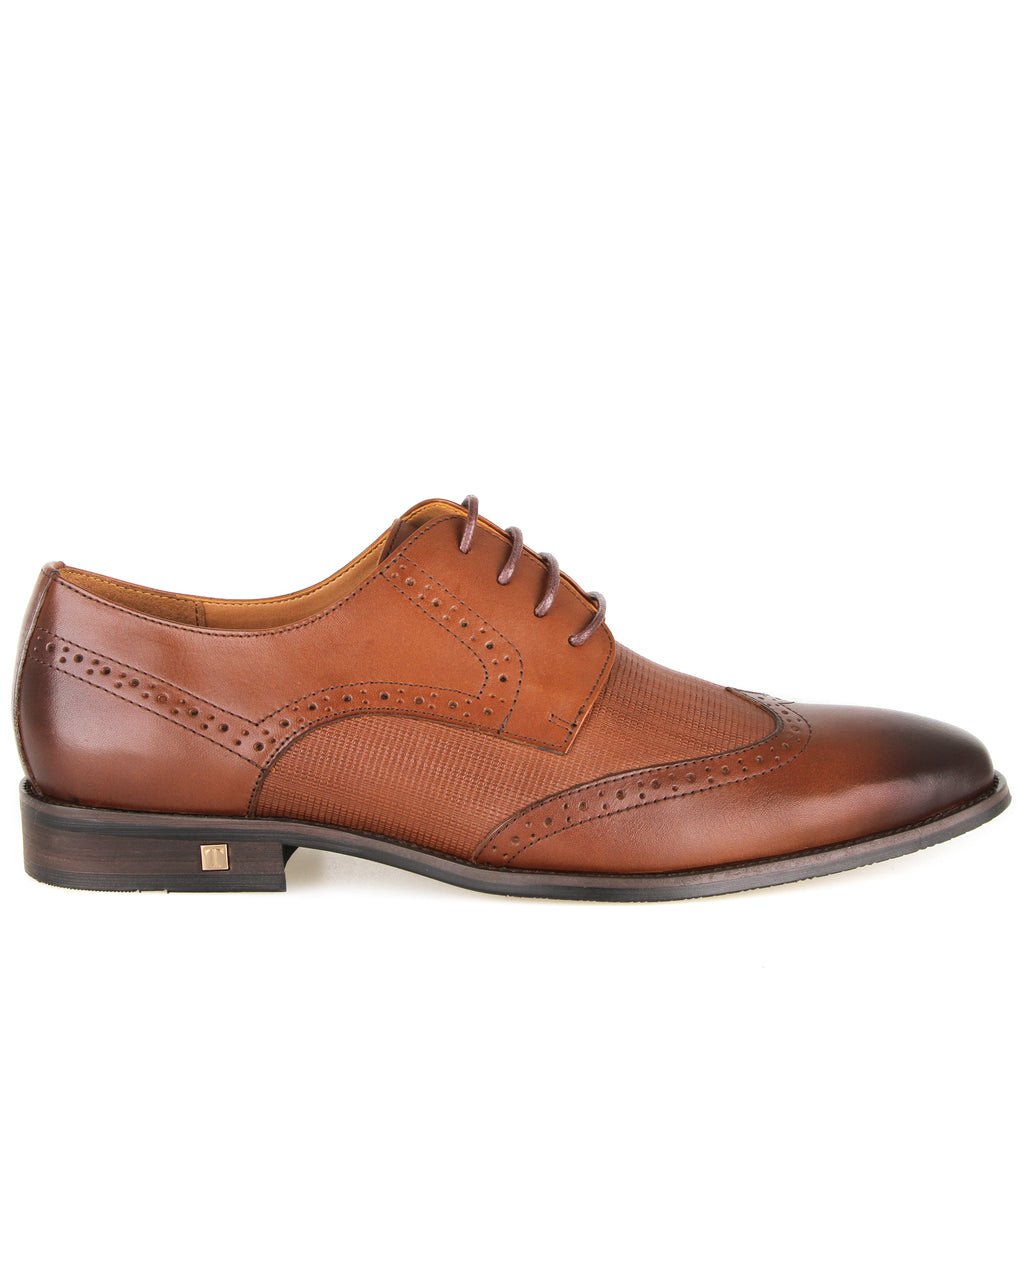 Tomaz F267 Formal Wingtip Oxford (Brown)